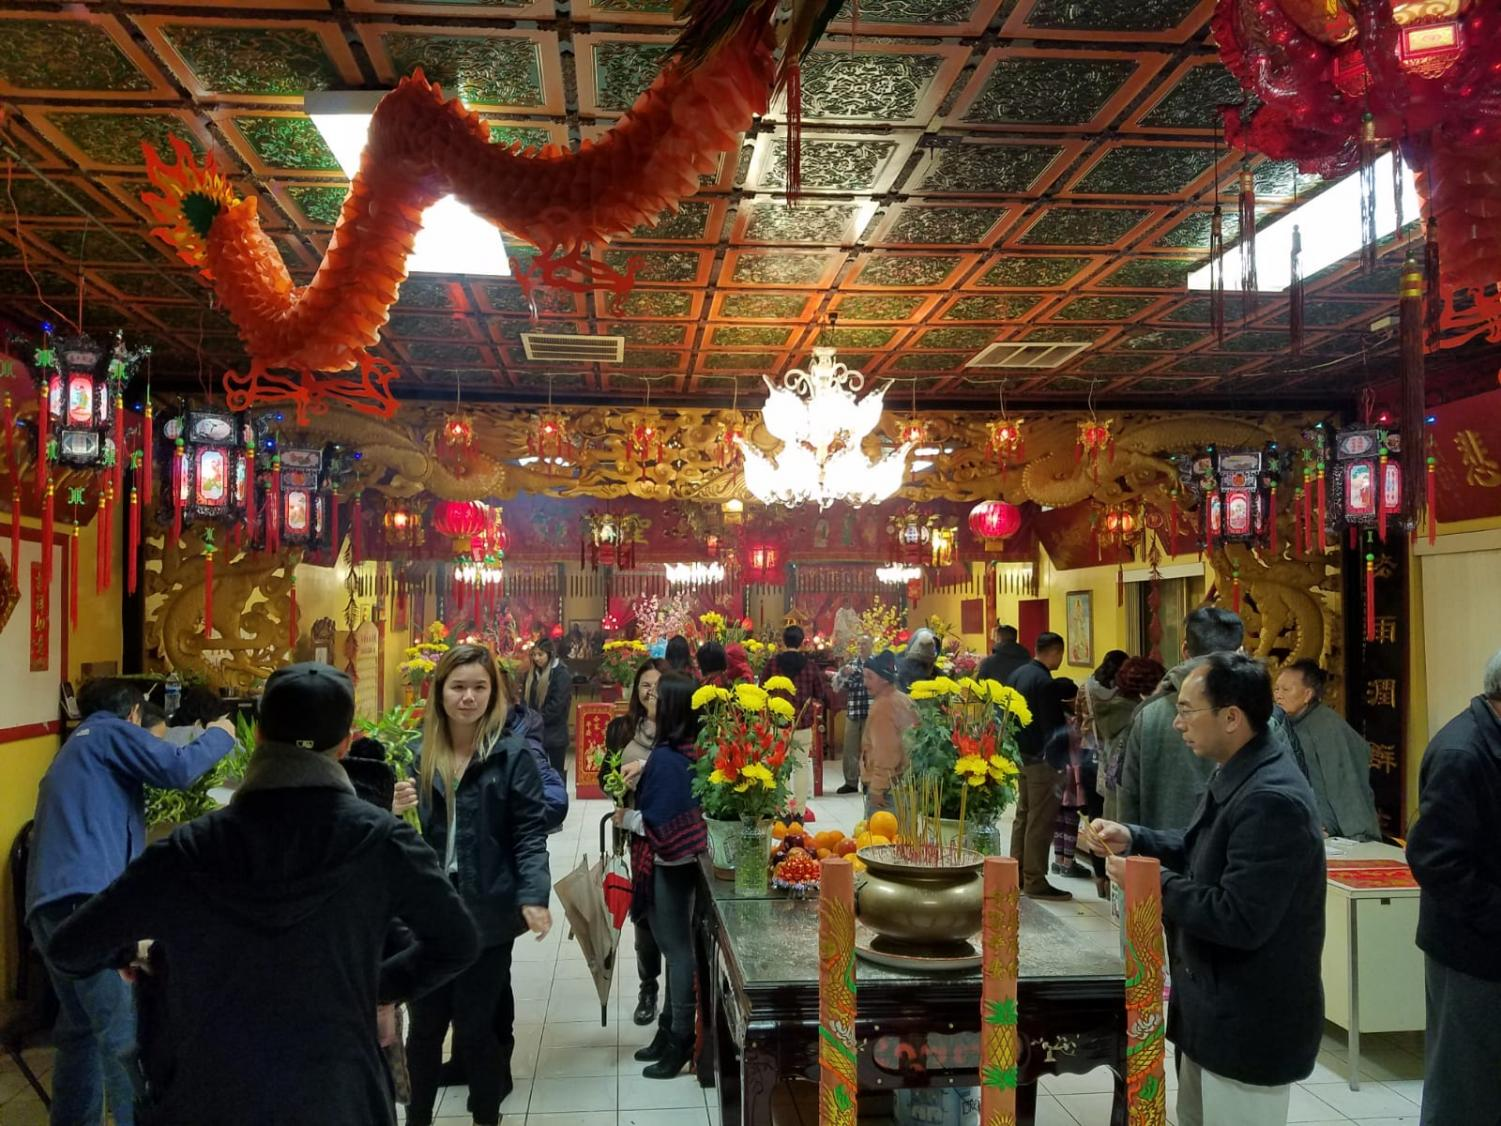 The San Diego Indo-Chinese association welcomed guests (and ancestors) with hot tea, aromatic incense, and stunning visual decor. By Brian Mohler/City Times